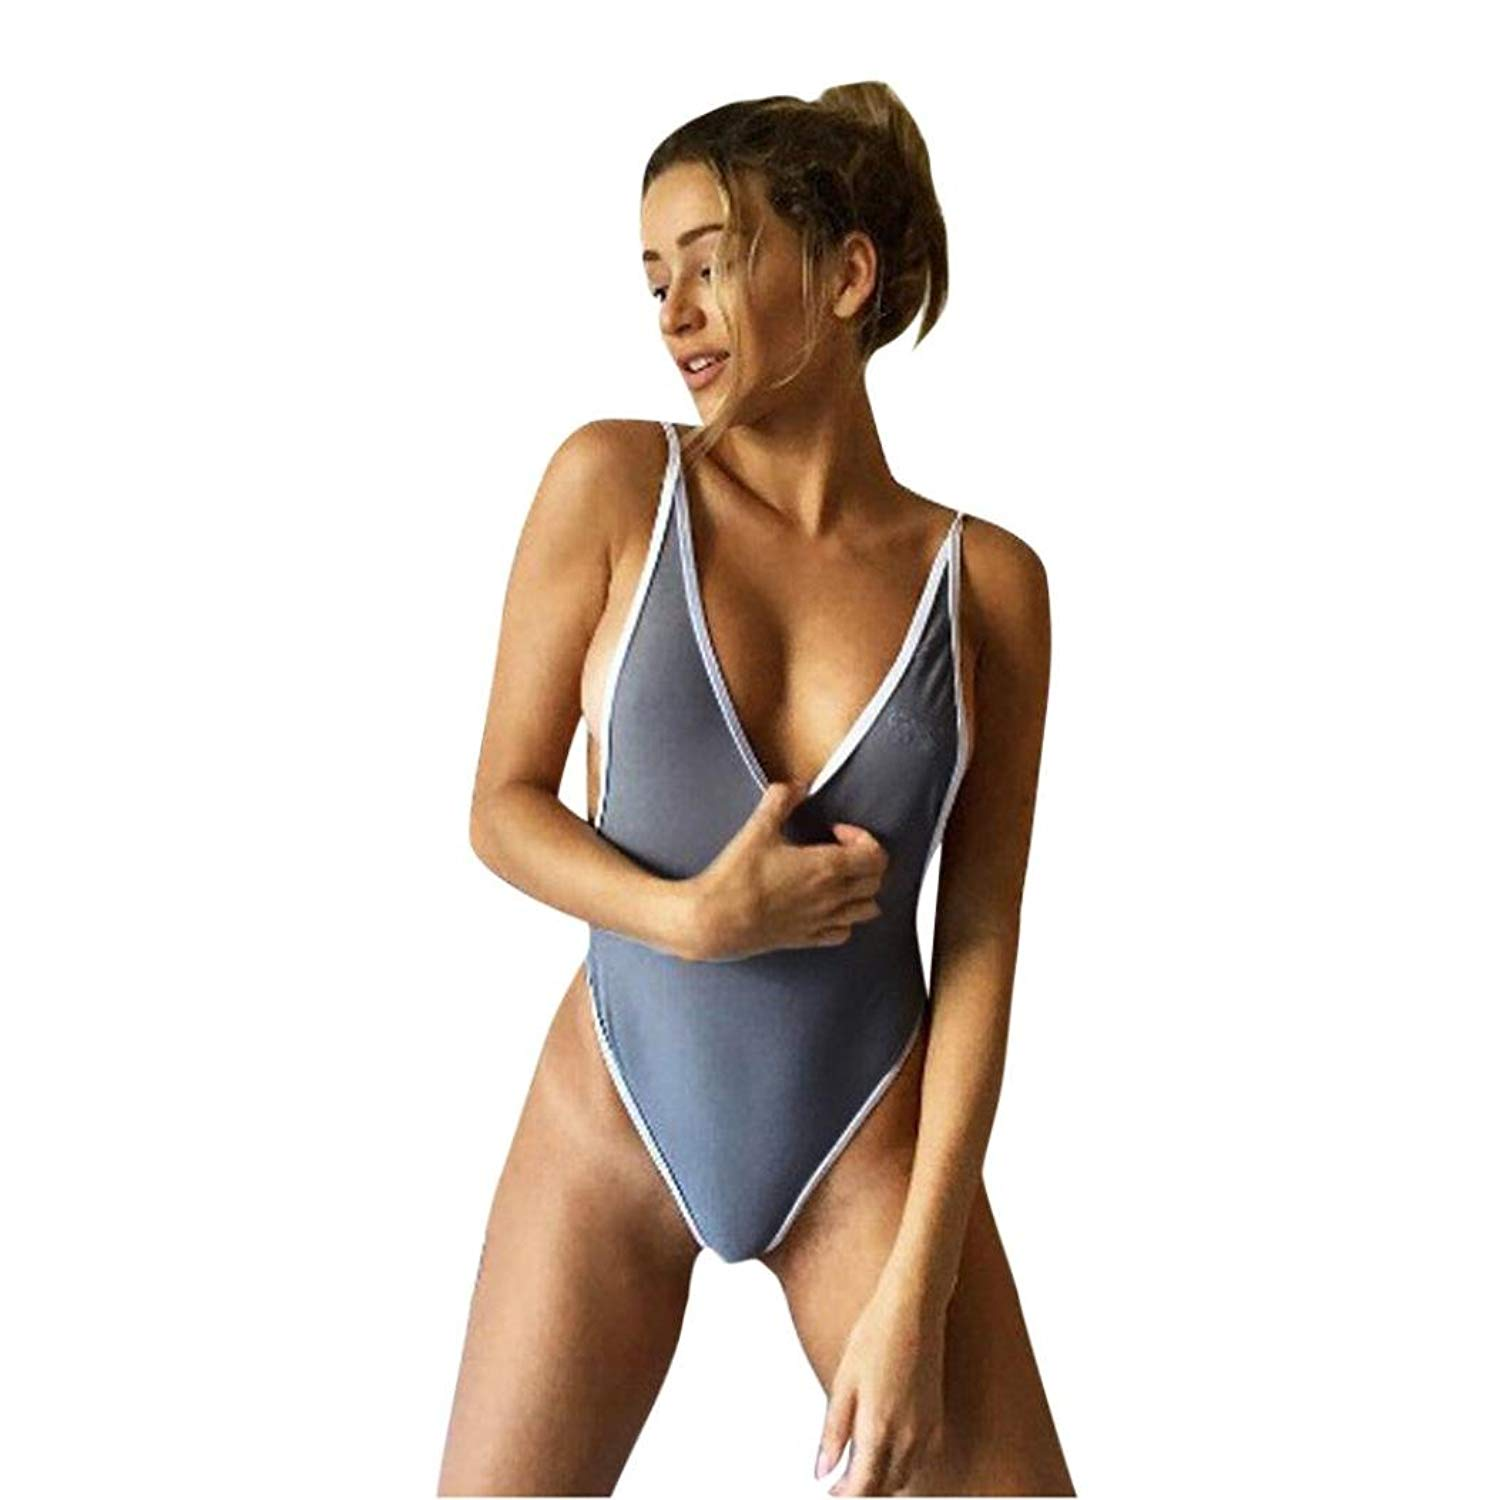 a70eb92c16 Get Quotations · Toponly Swimming suit Women One Piece Bikini,Toponly Women  One Piece Monokini V Neck Swimsuit